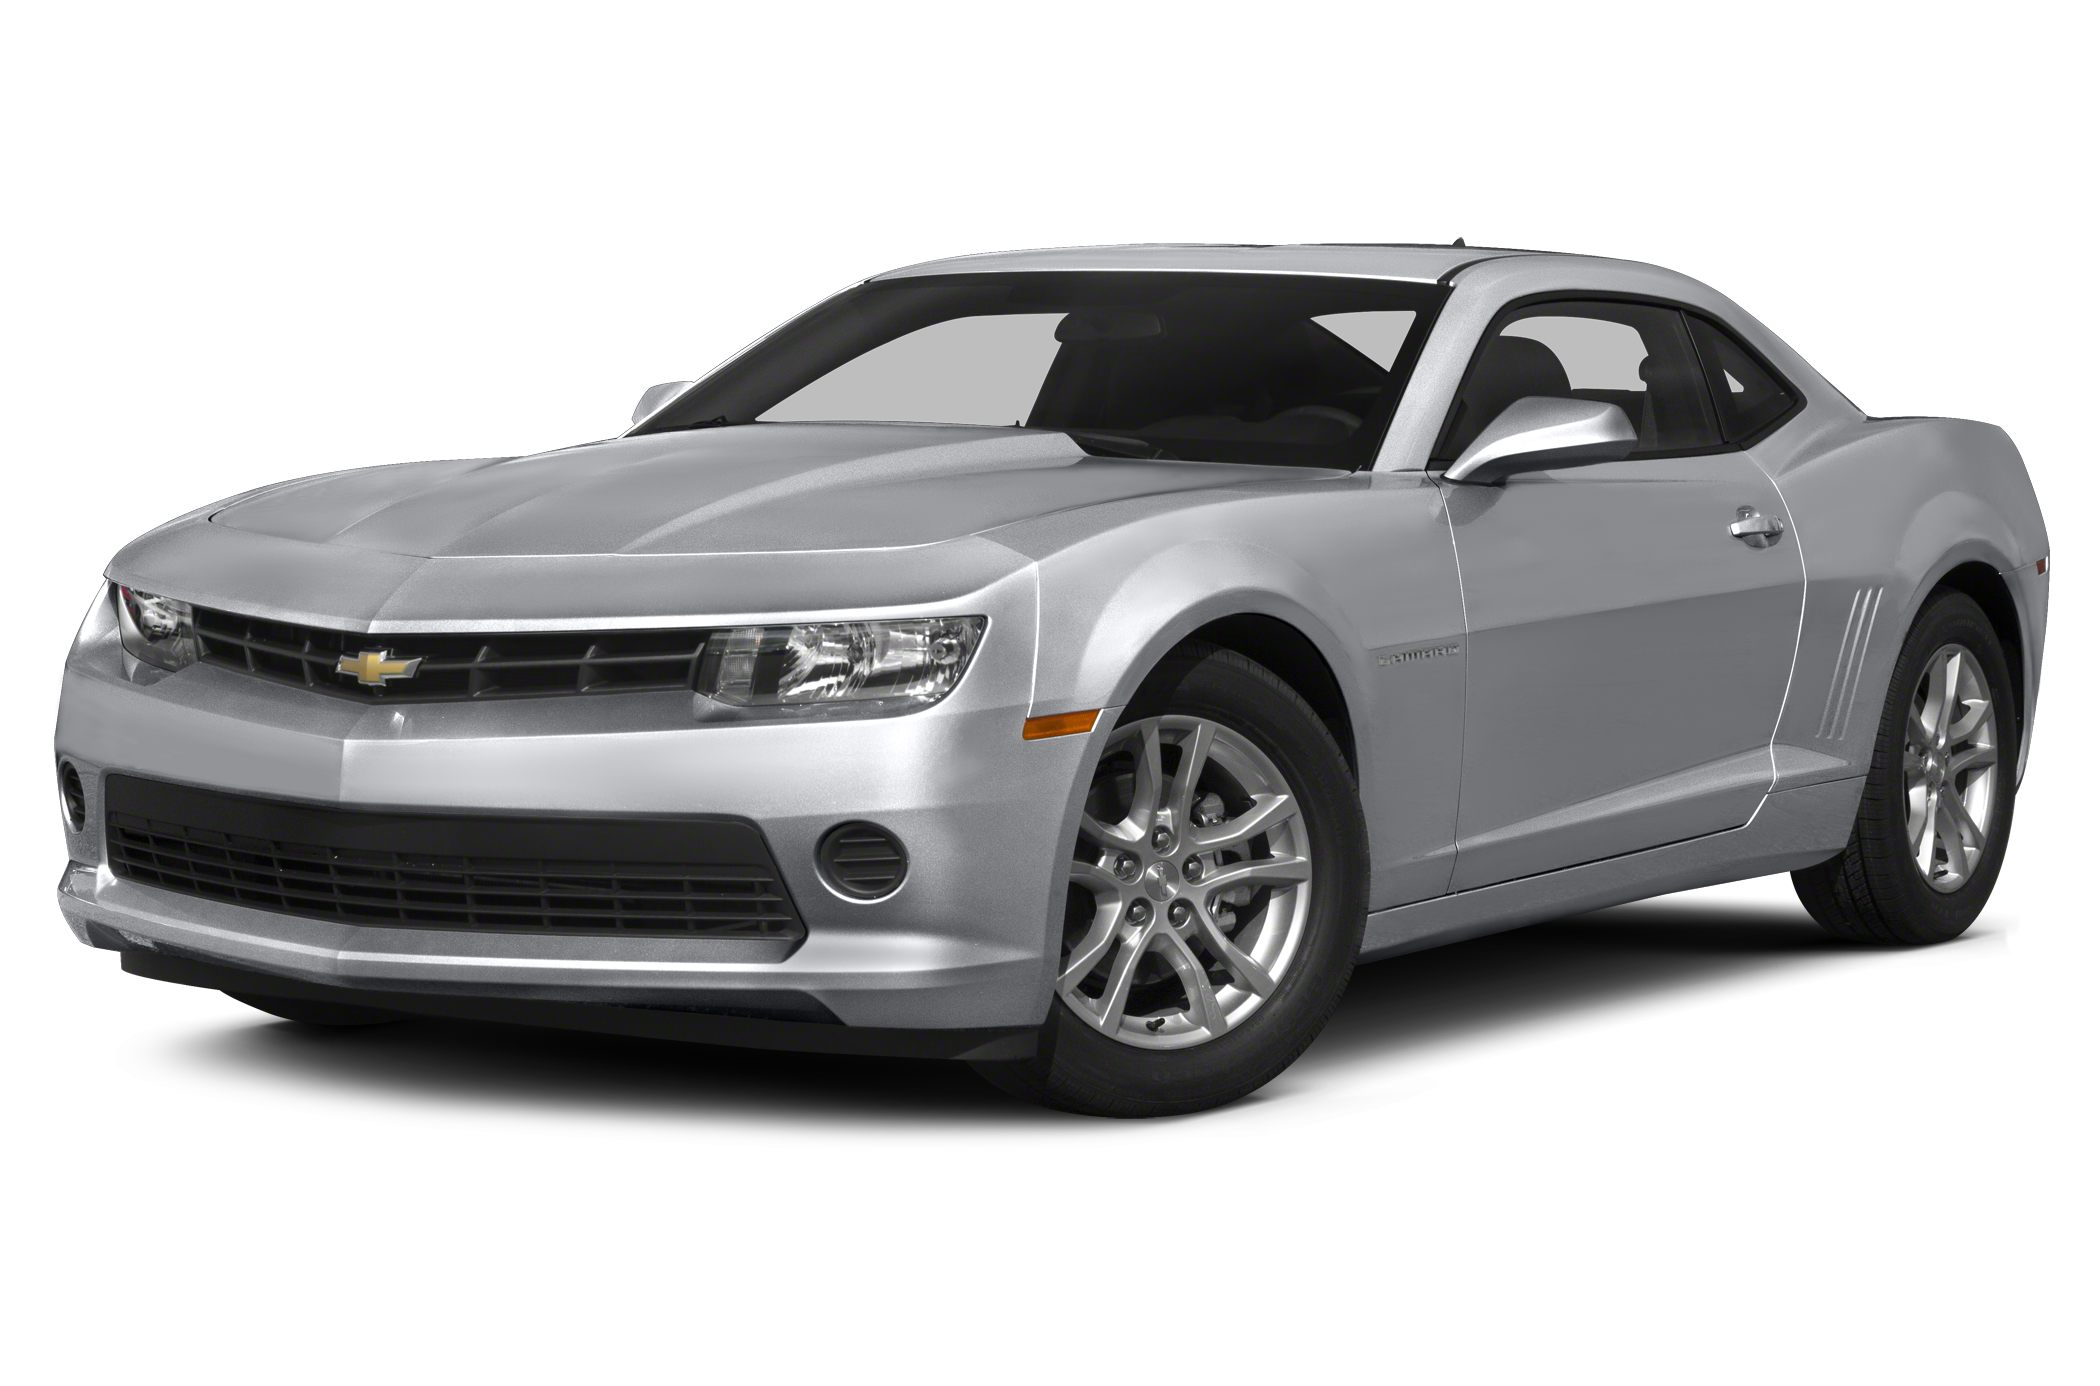 camaro per shared j chevrolet more problems average the competition reliability d with ford ranks compared ranked industry is mustang above in vehicles power